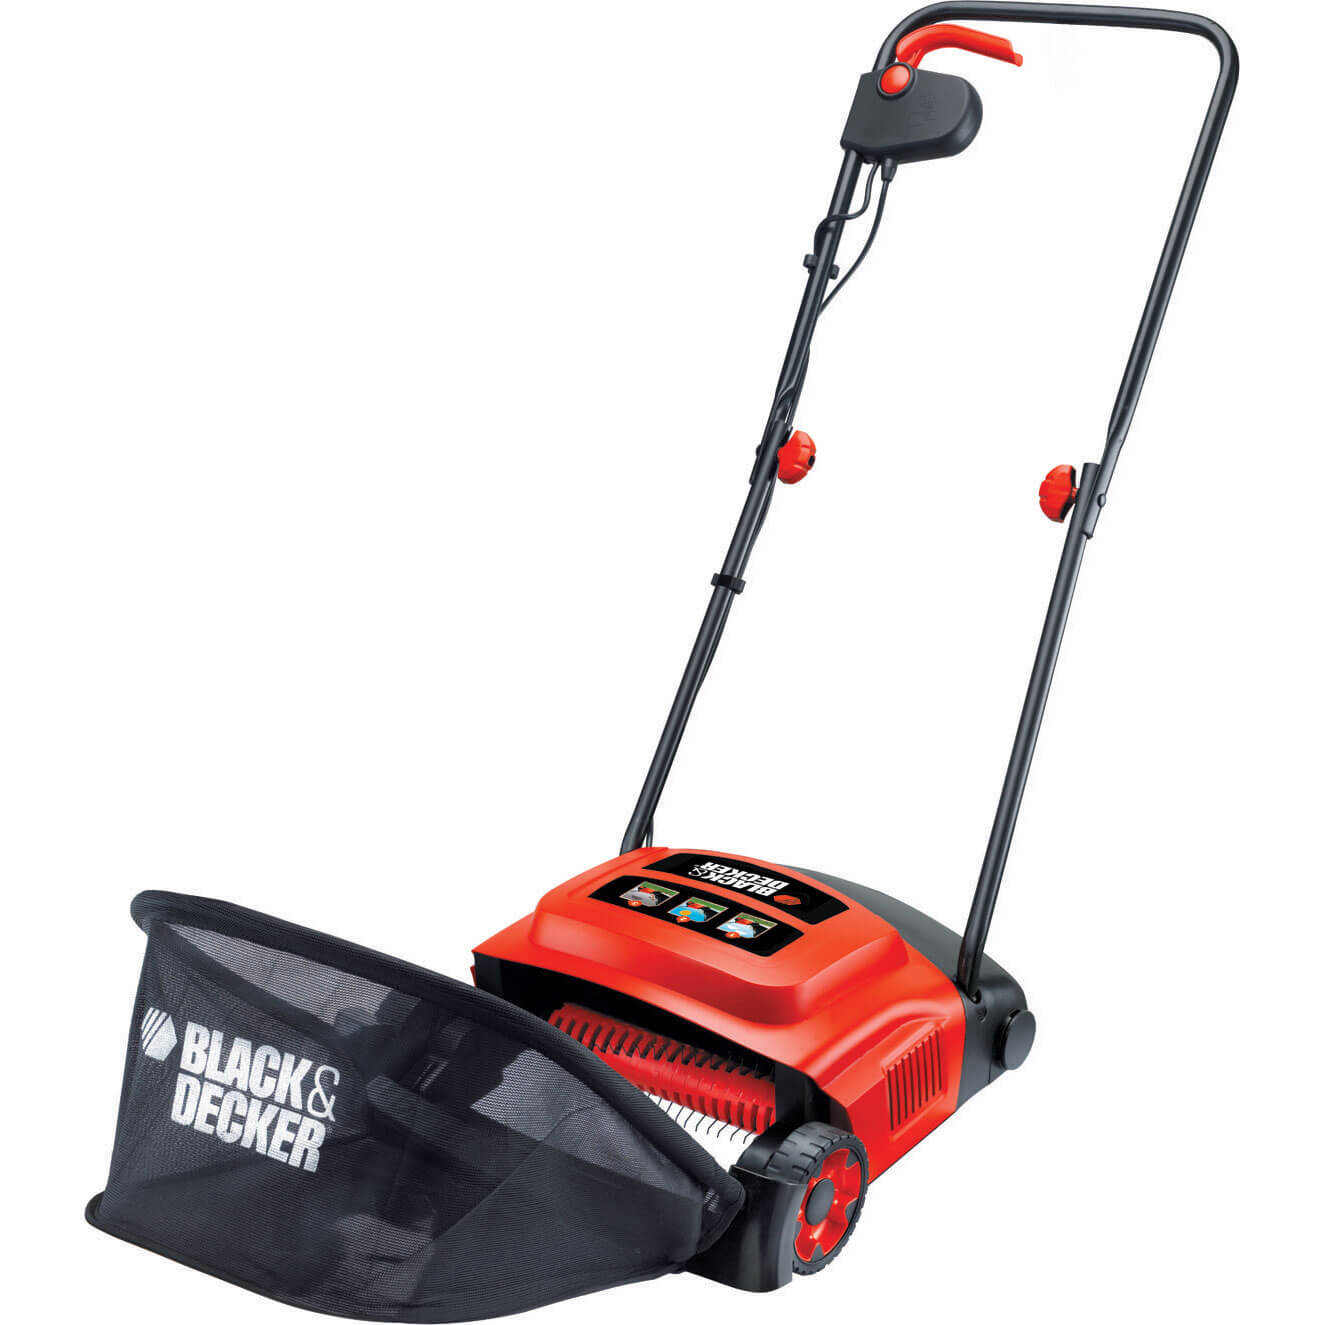 Black & Decker GD300 Electric Lawn Raker 300mm Rake 600w 240v